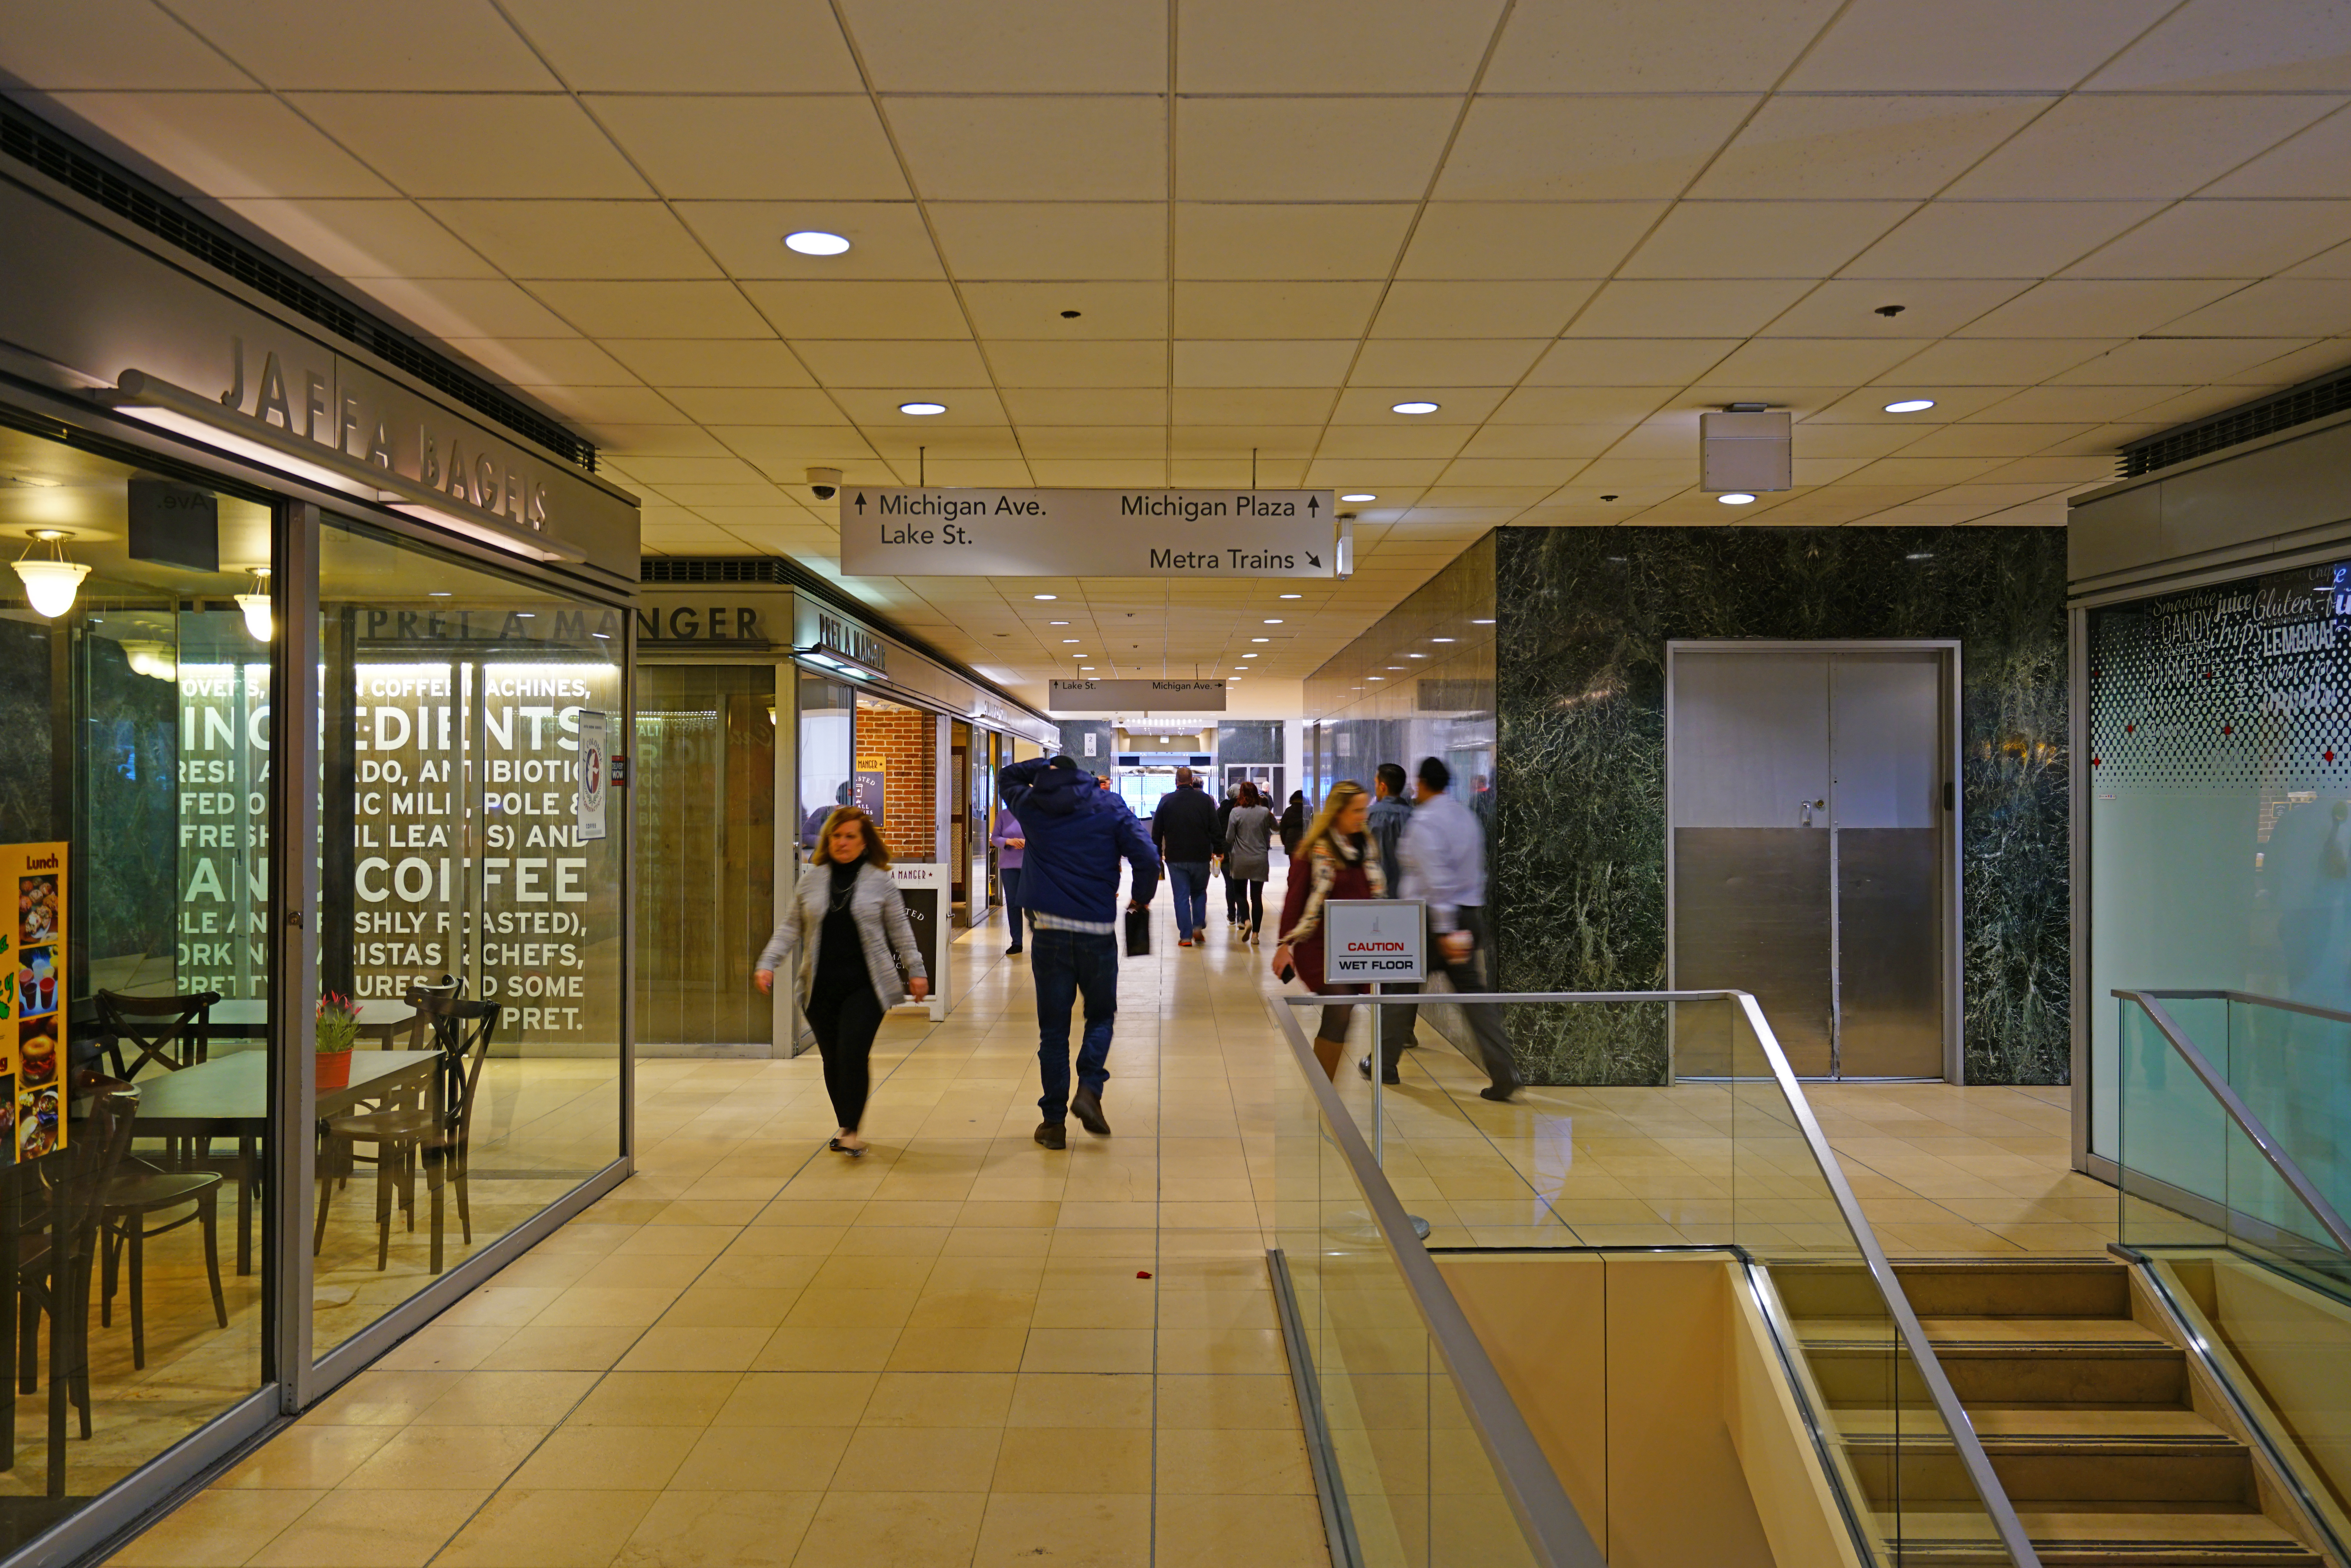 A hallway with a white floor and white ceiling. Shops on the left and right with a few people walking down a hall. A staircase and elevator shown on the right.